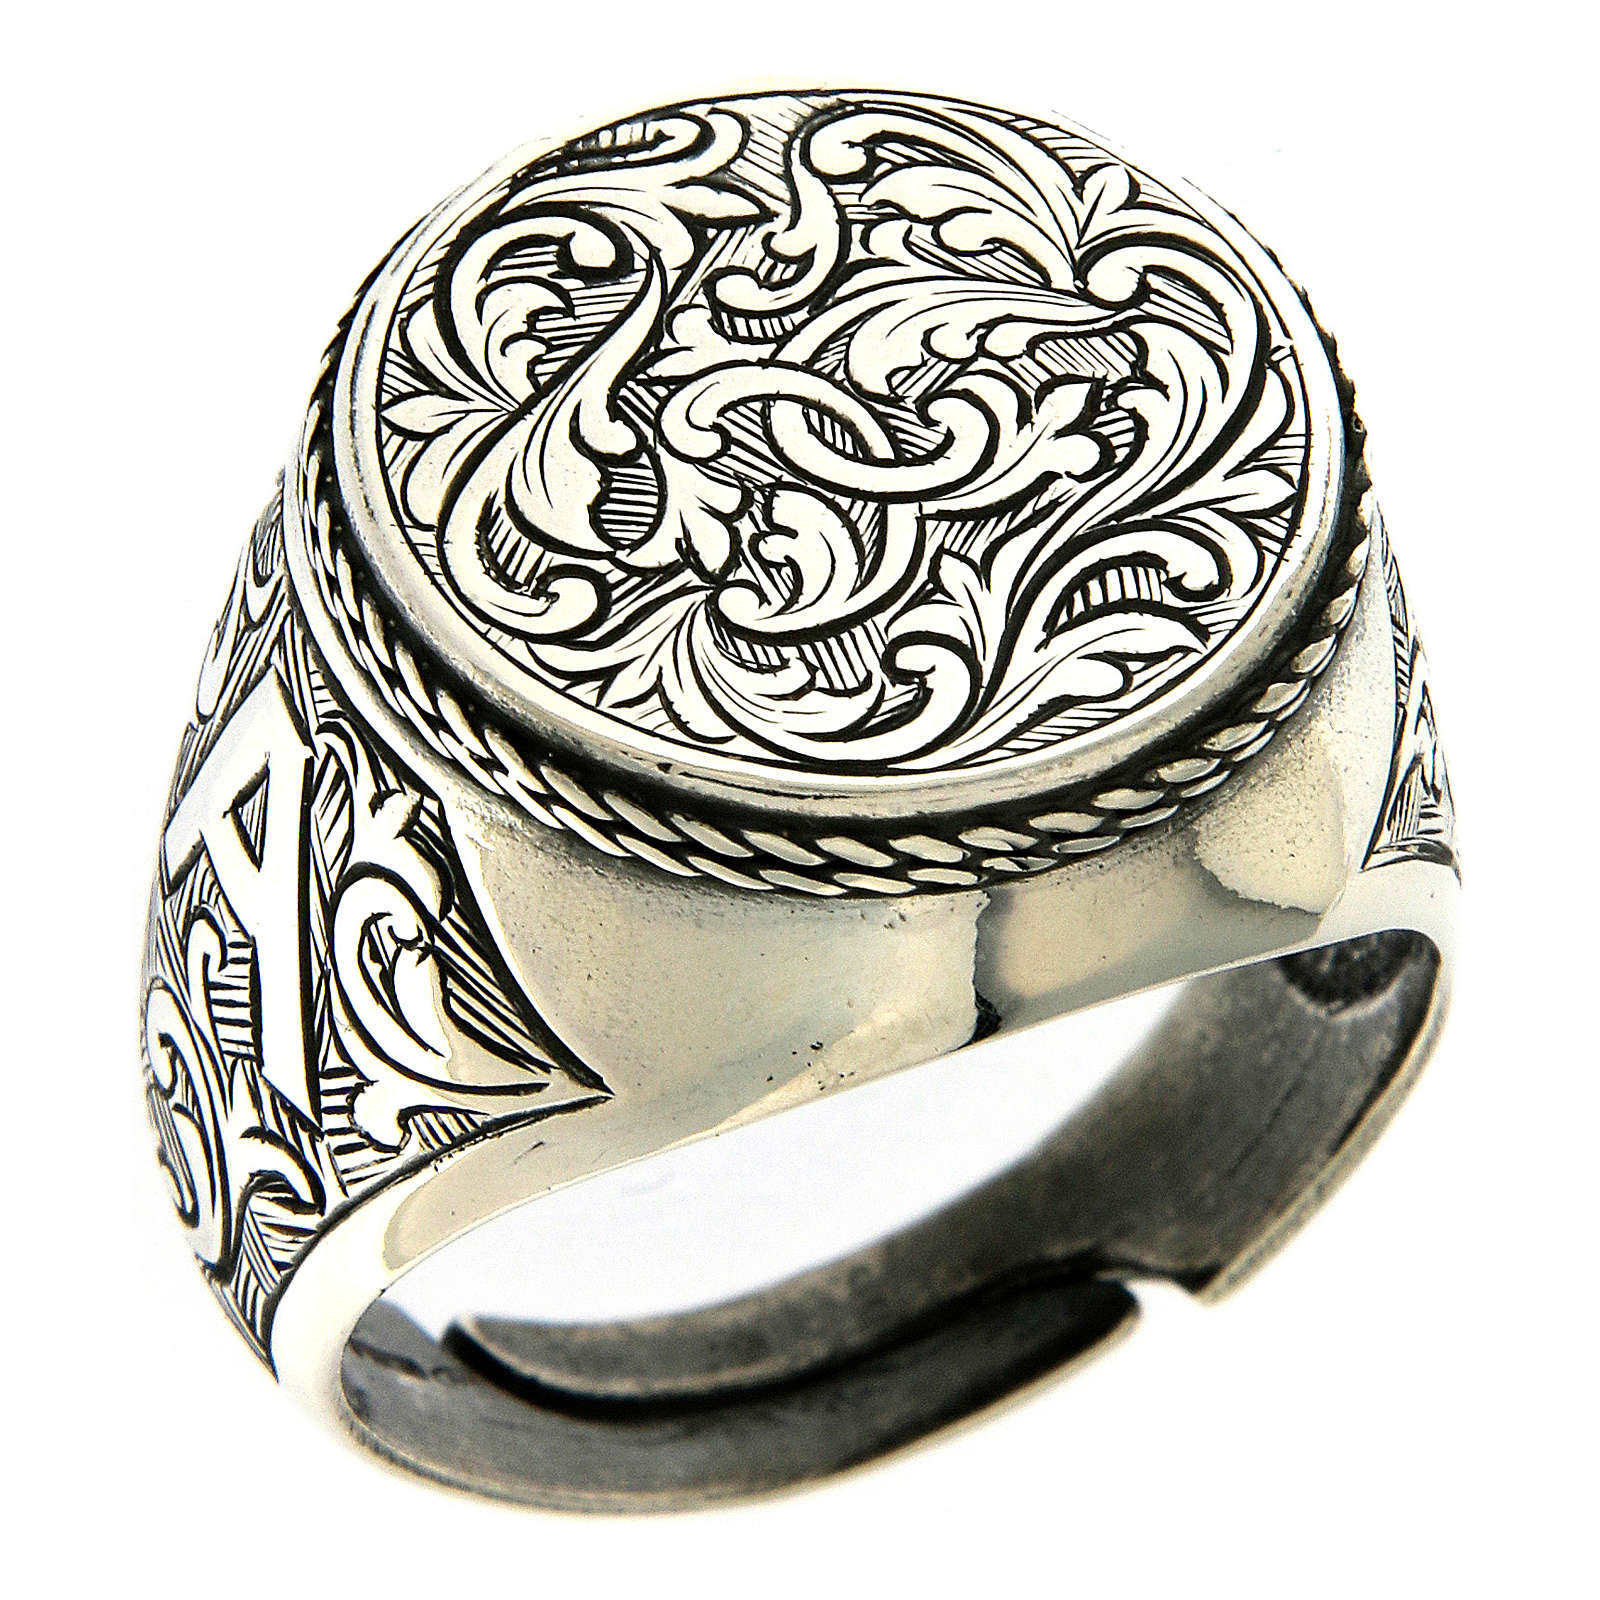 Ring in sterling silver with flower engraving 3